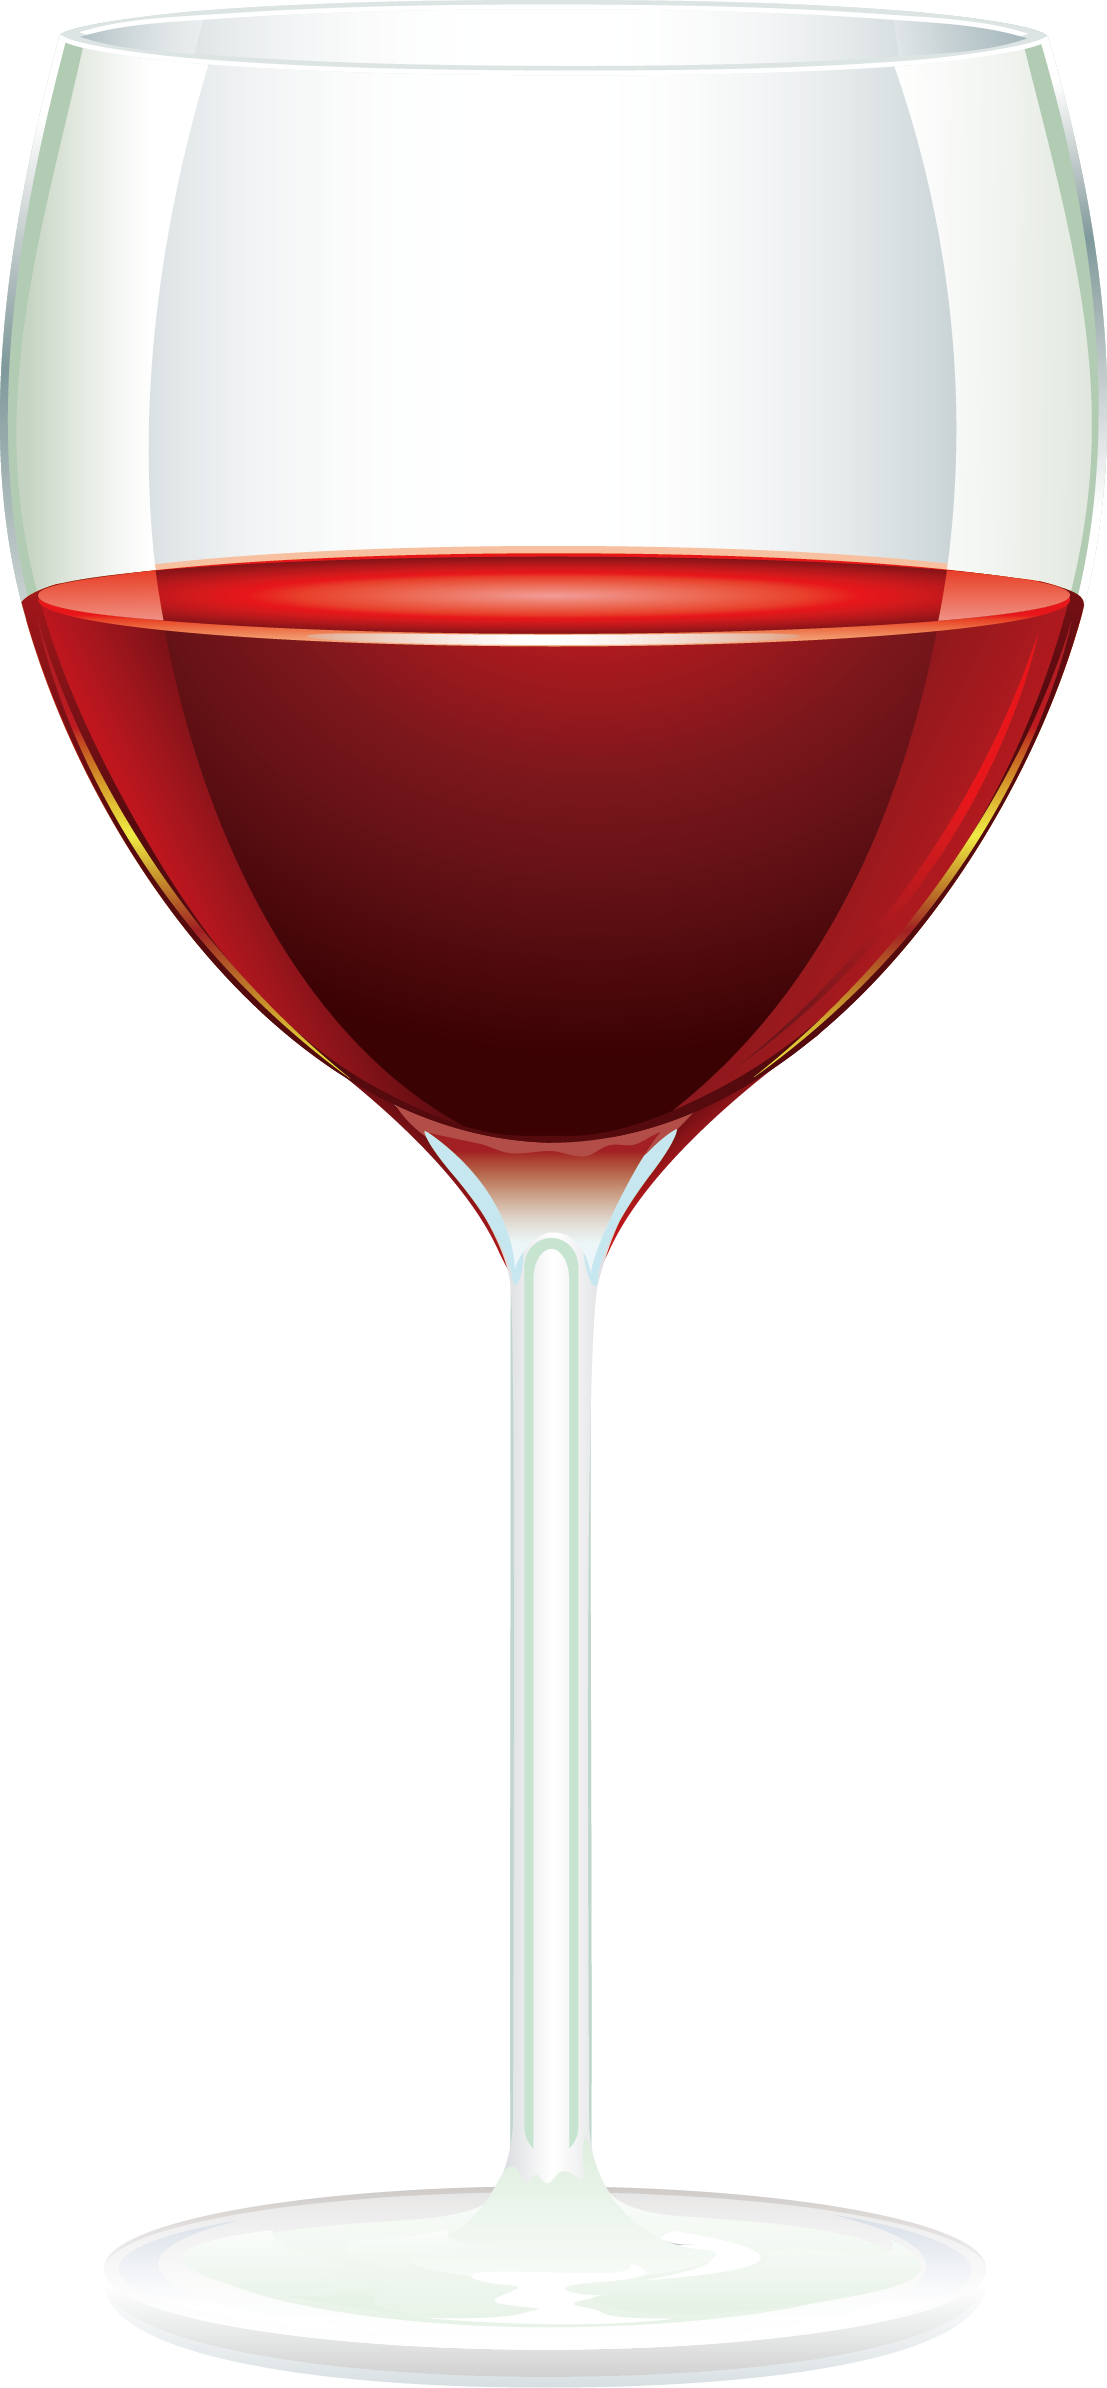 Cup of wine png. Red cocktail glass design